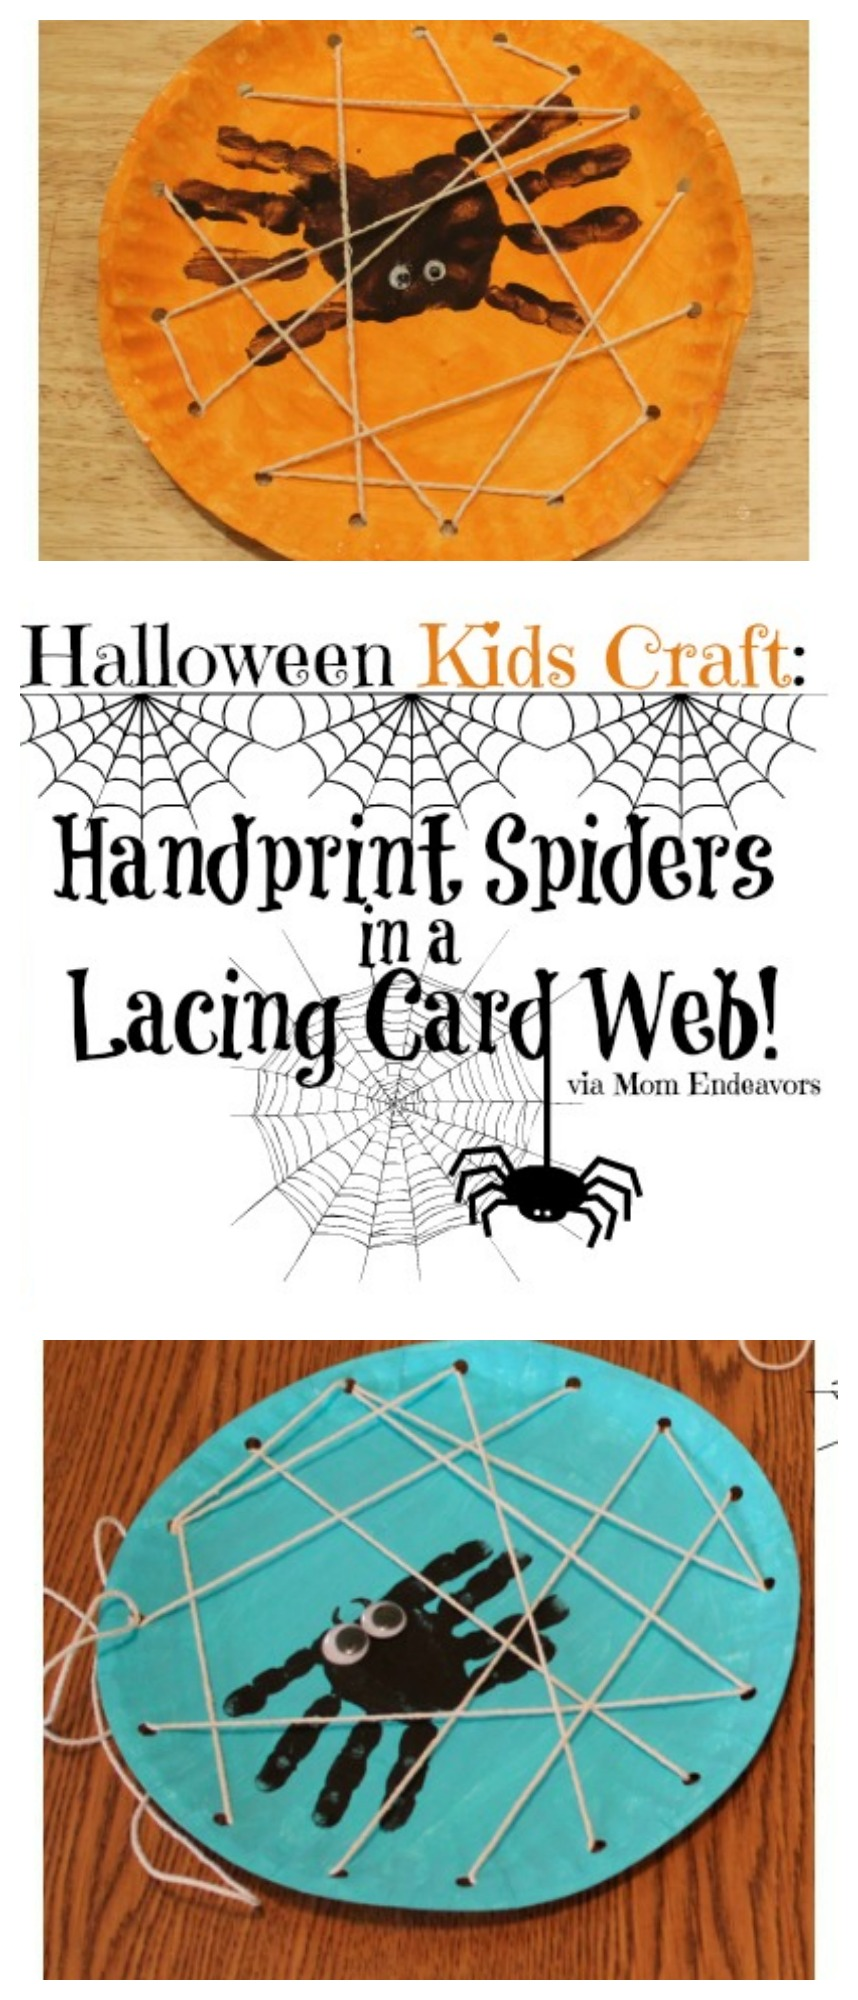 Handprint Spiders in a Lacing Card Web